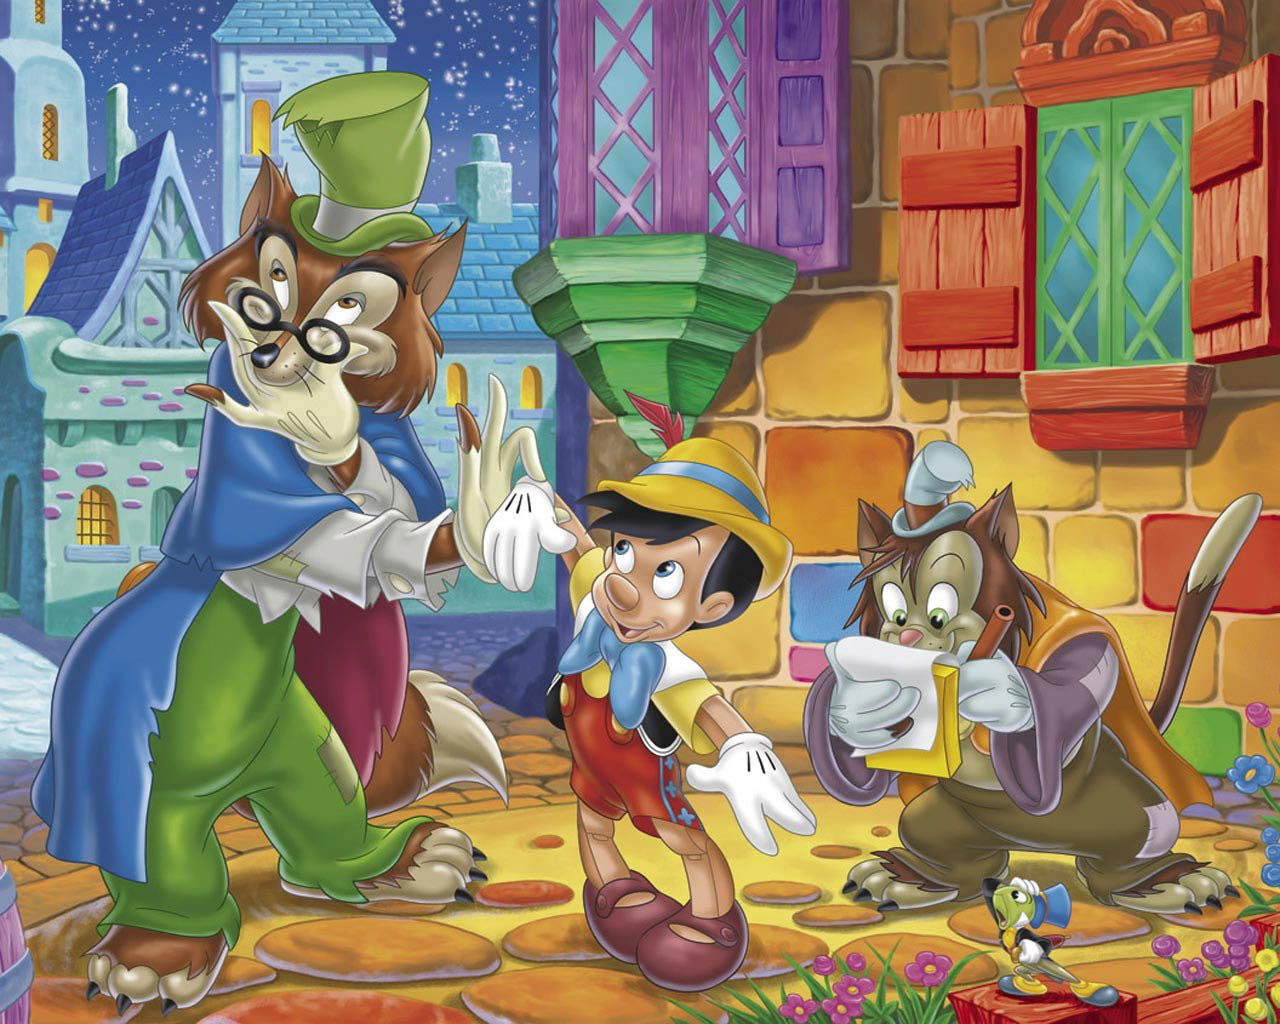 New Hollywood Movies Hd Wallpapers Pinocchio High Defination Wallpapers Backgrounds All Hd